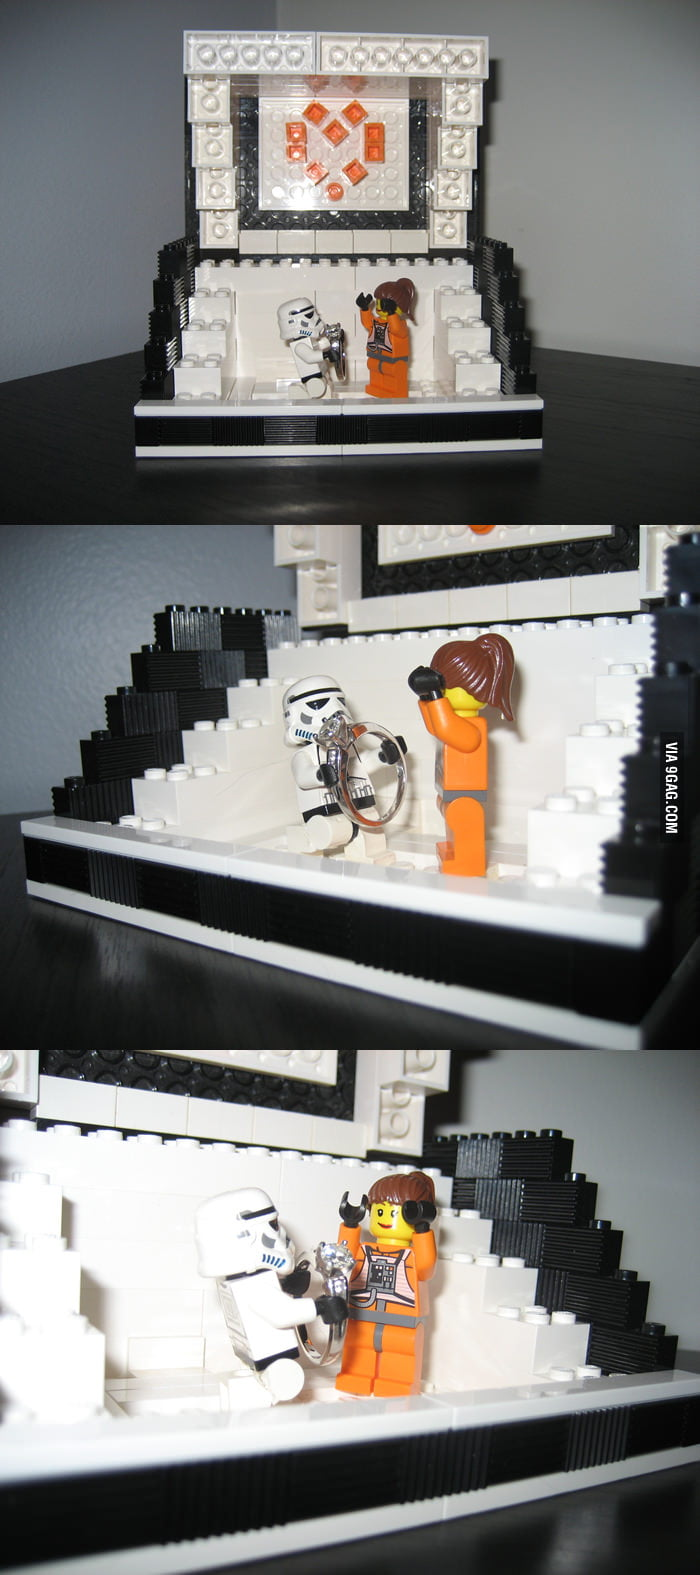 How a nerd proposes: Star Wars LEGO Proposal